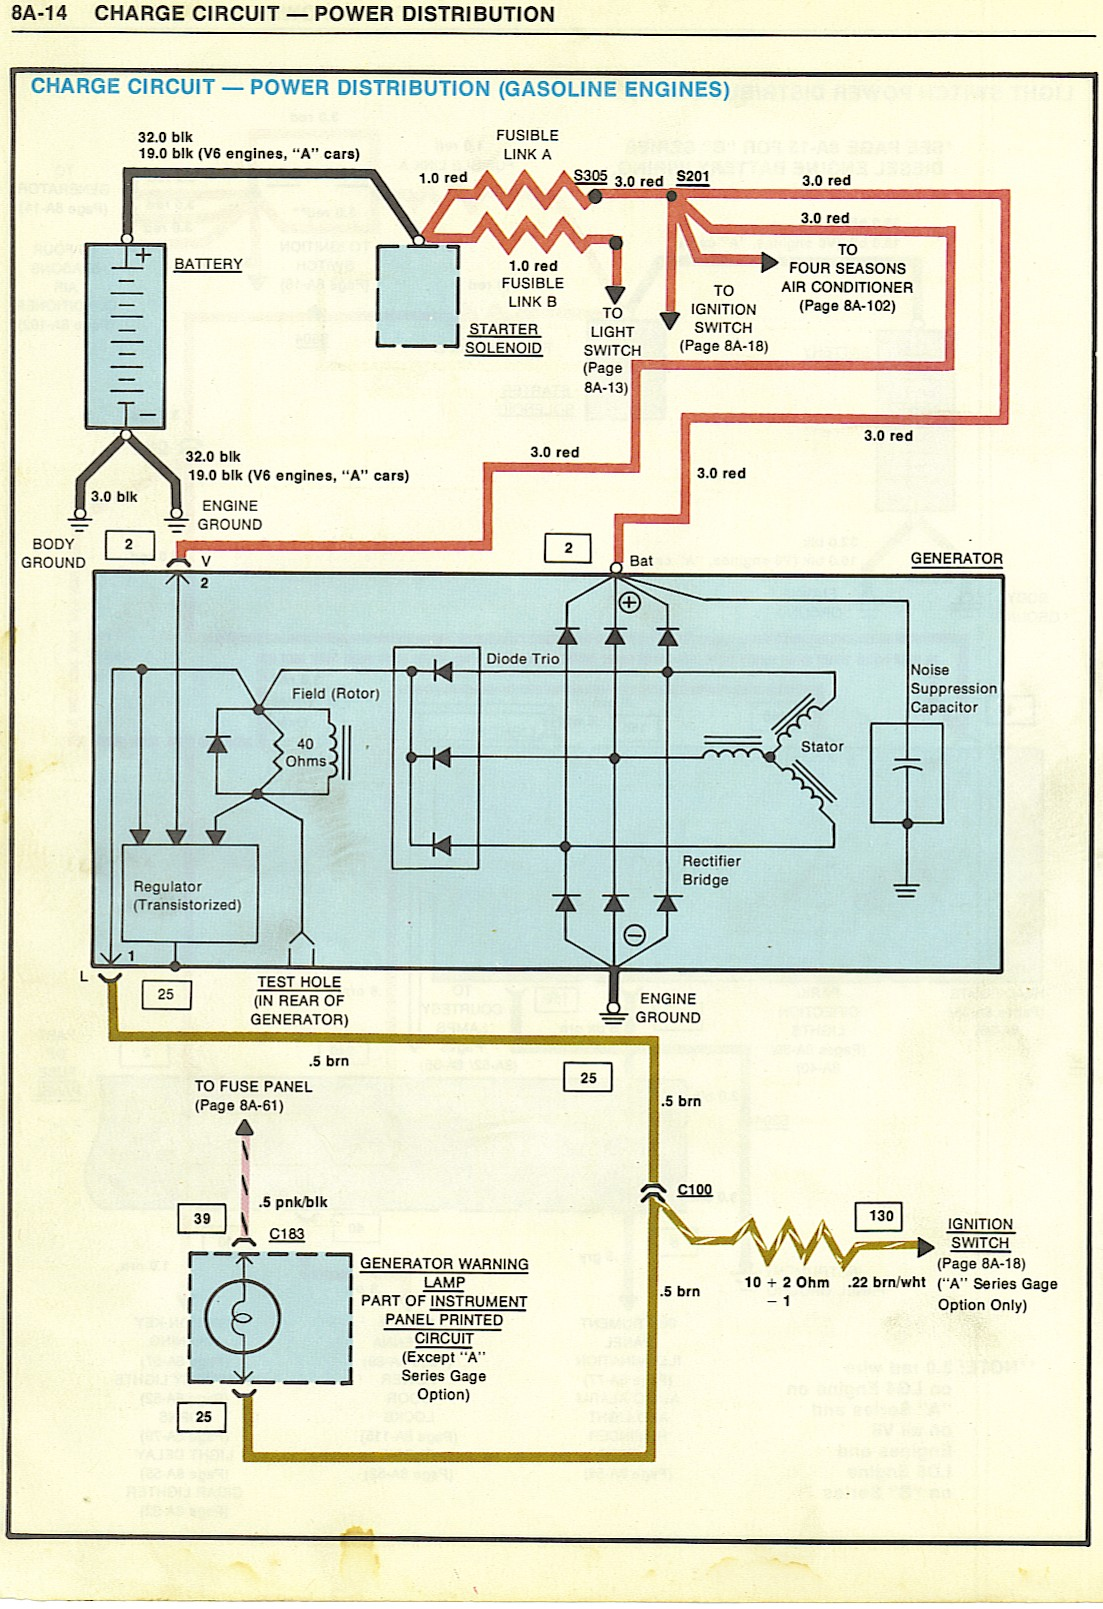 1984 chevy k10 fuse box diagram #6 1984 GMC Wiring Diagrams 1984 chevy k10 fuse box diagram